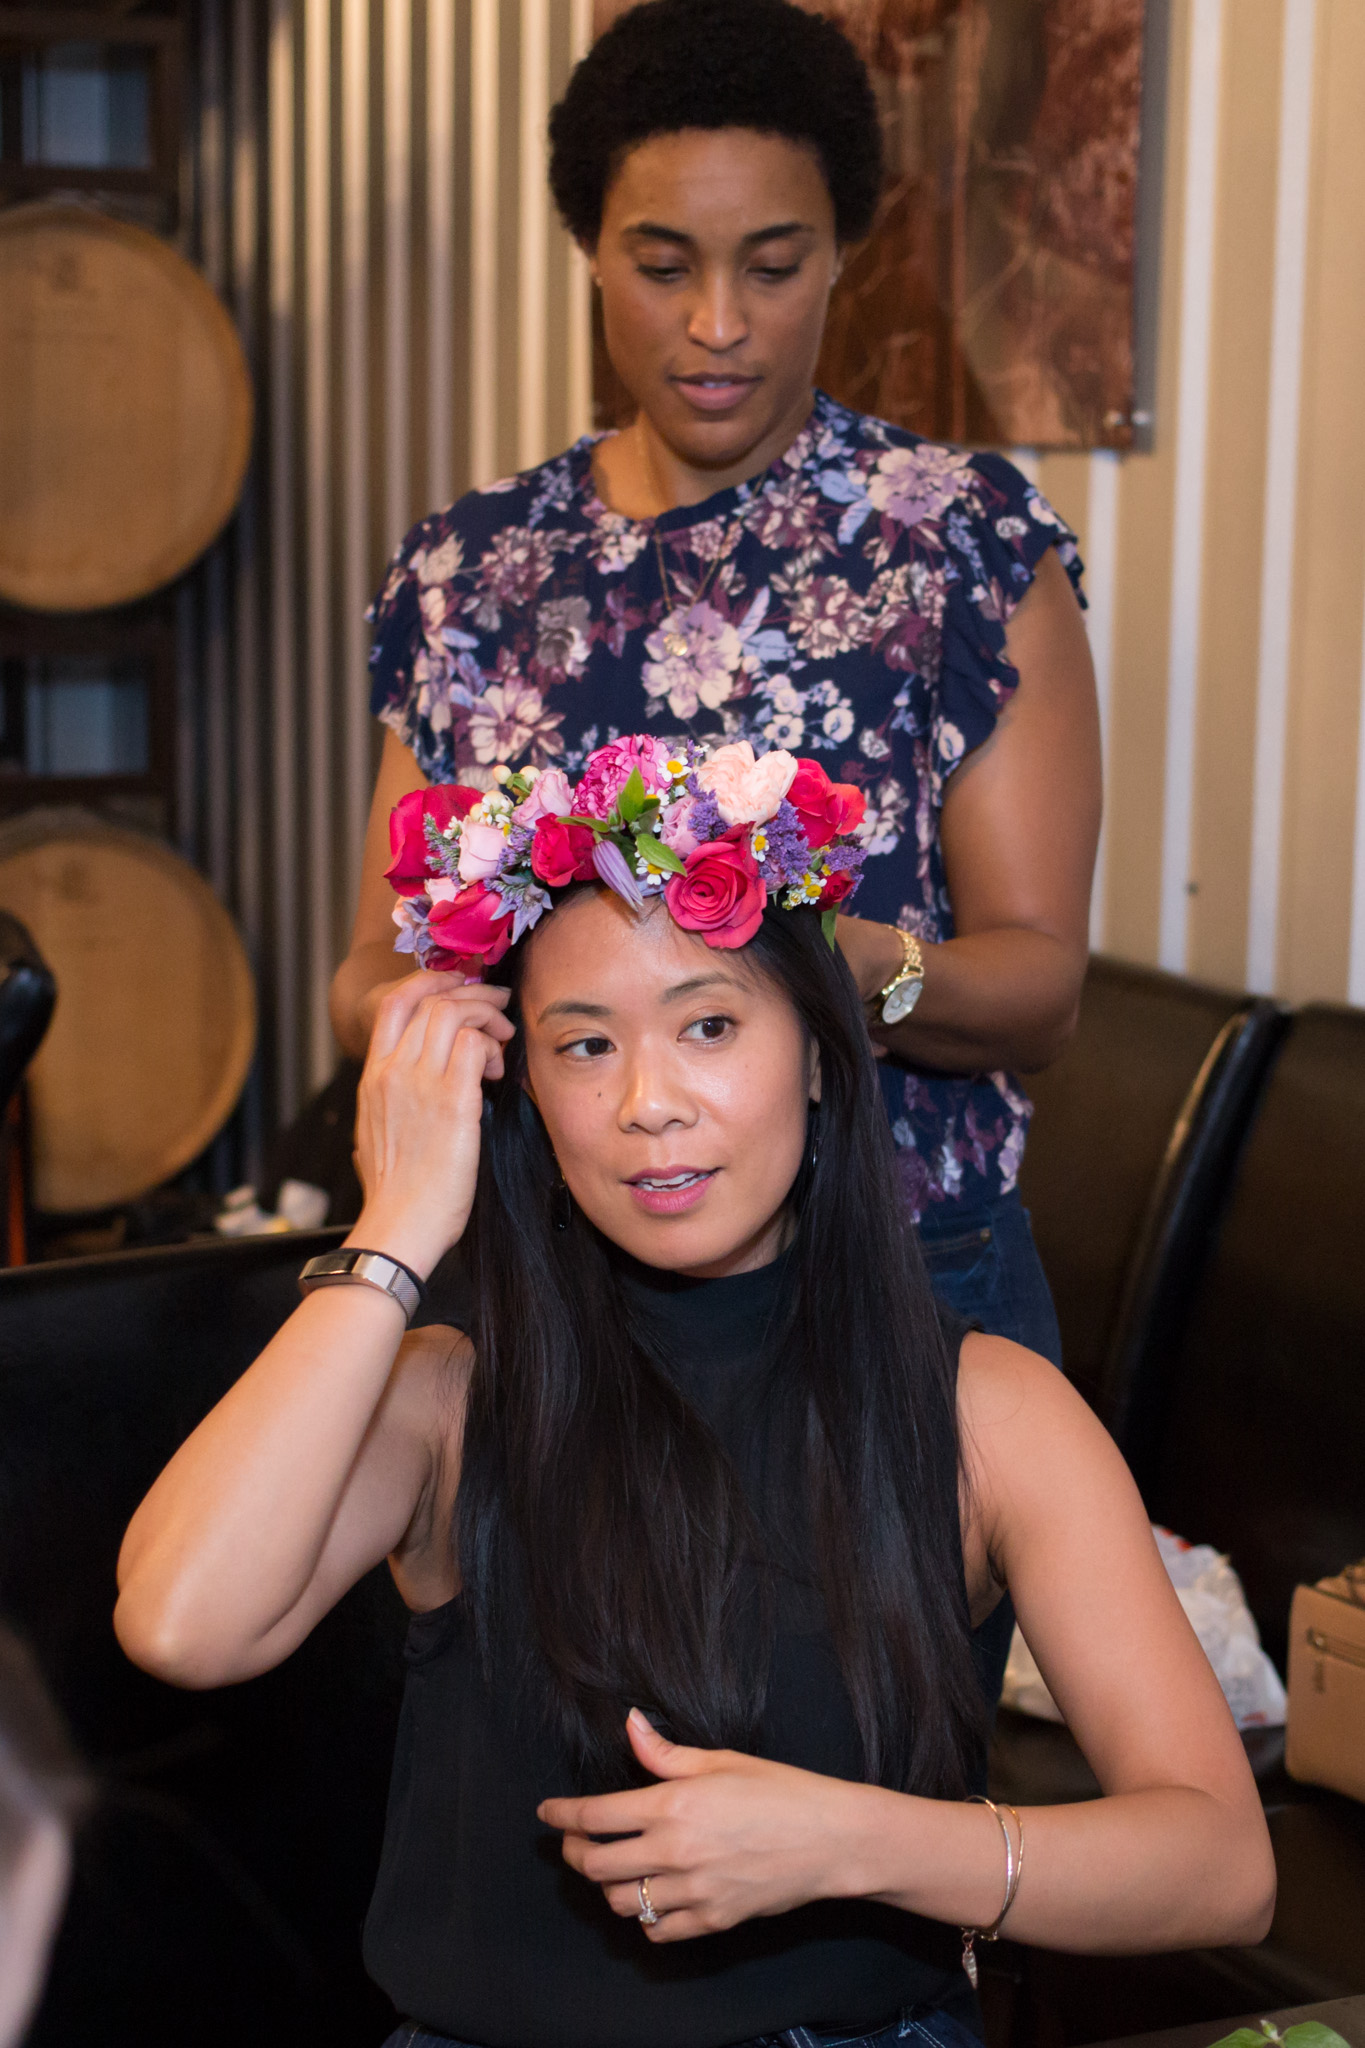 WEB Evie Morgan Events Flower Crown Party -129.jpg